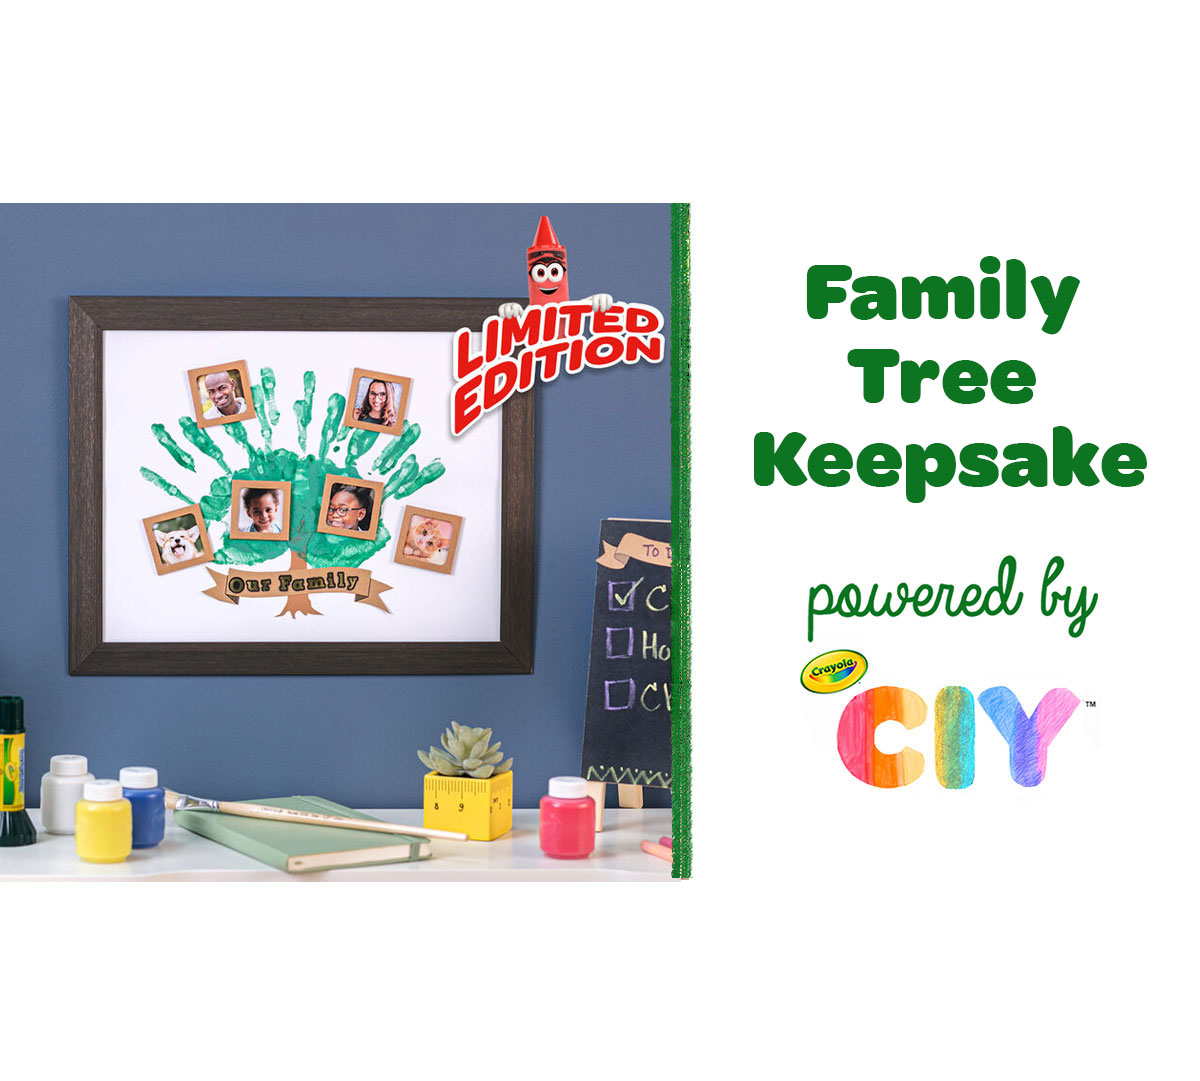 Family Tree Keepsake Craft Kit Components in Box